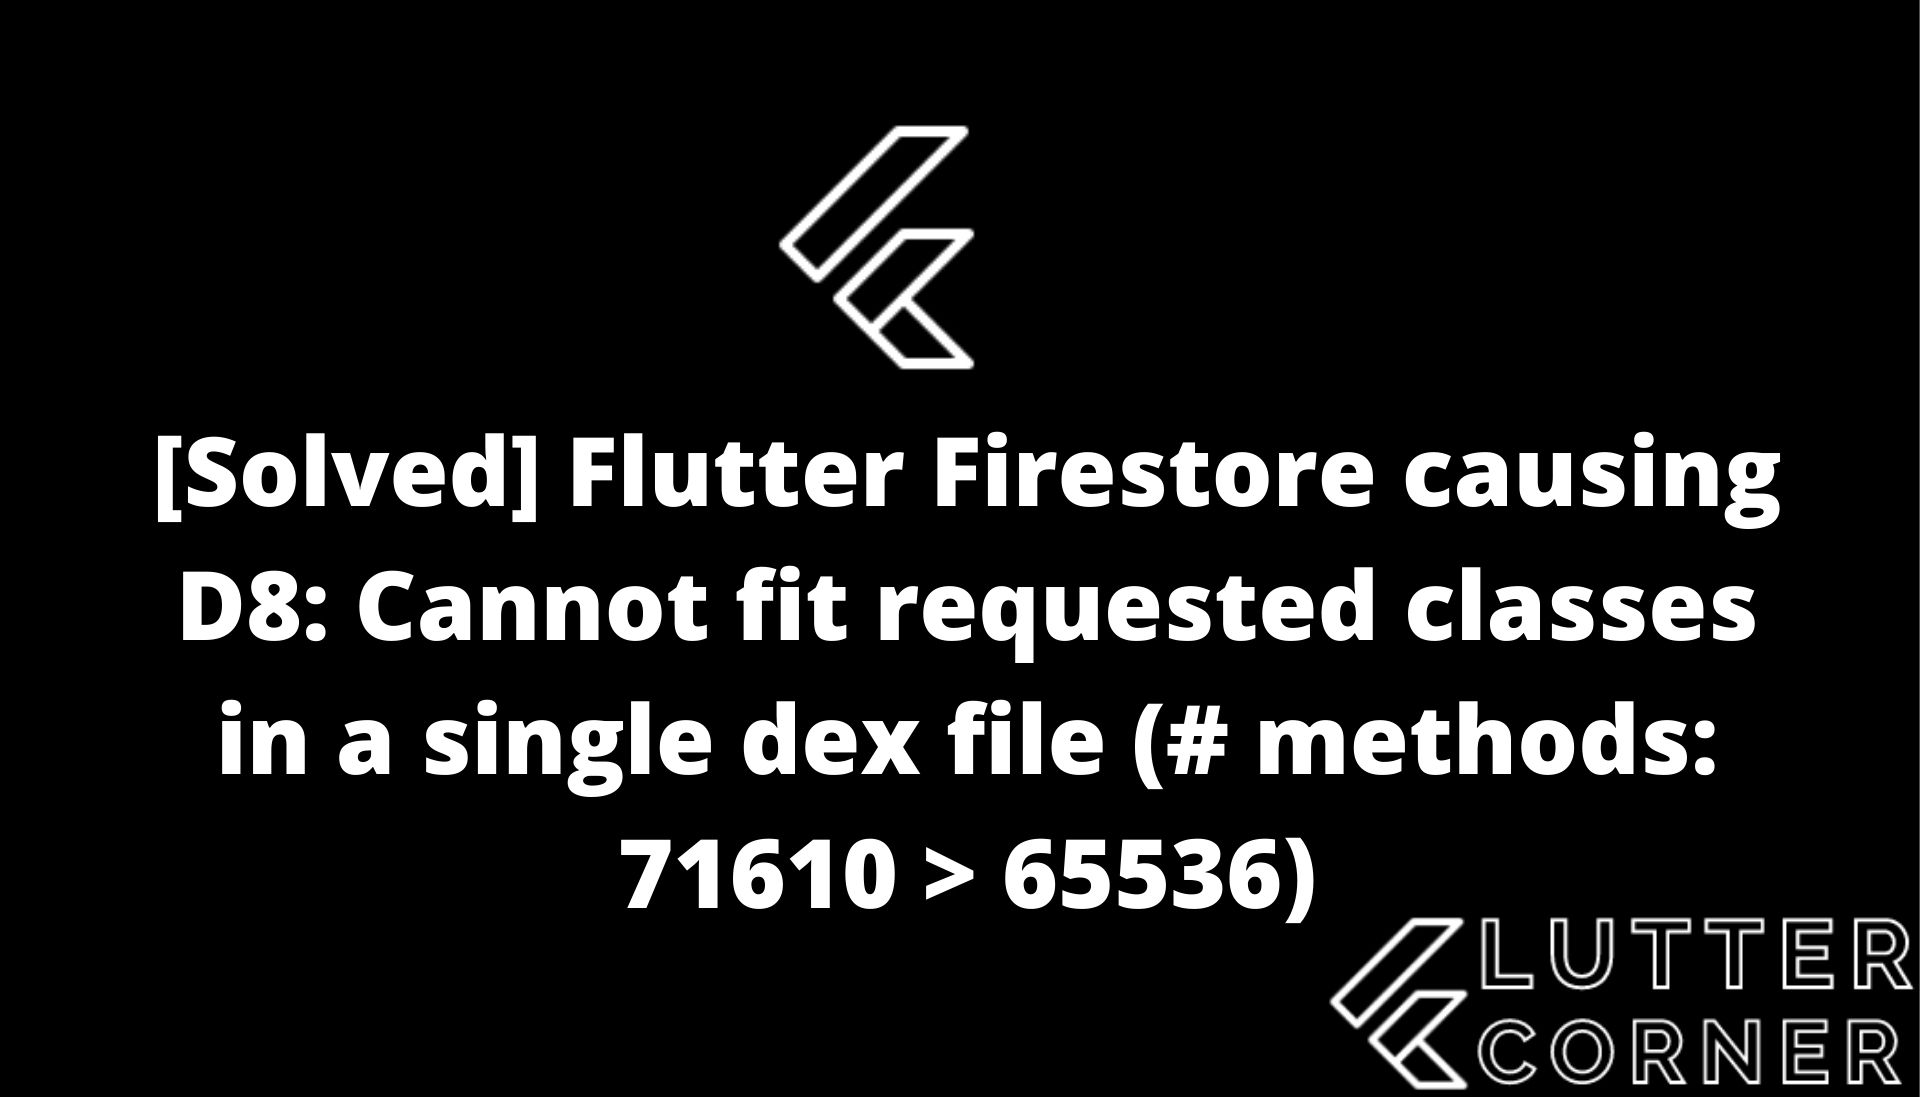 flutter D8: Cannot fit requested classes in a single dex file, D8: Cannot fit requested classes in a single dex file in flutter, Flutter Firestore causing D8: Cannot fit requested classes in a single dex file, D8 Cannot fit requested classes in a single dex file